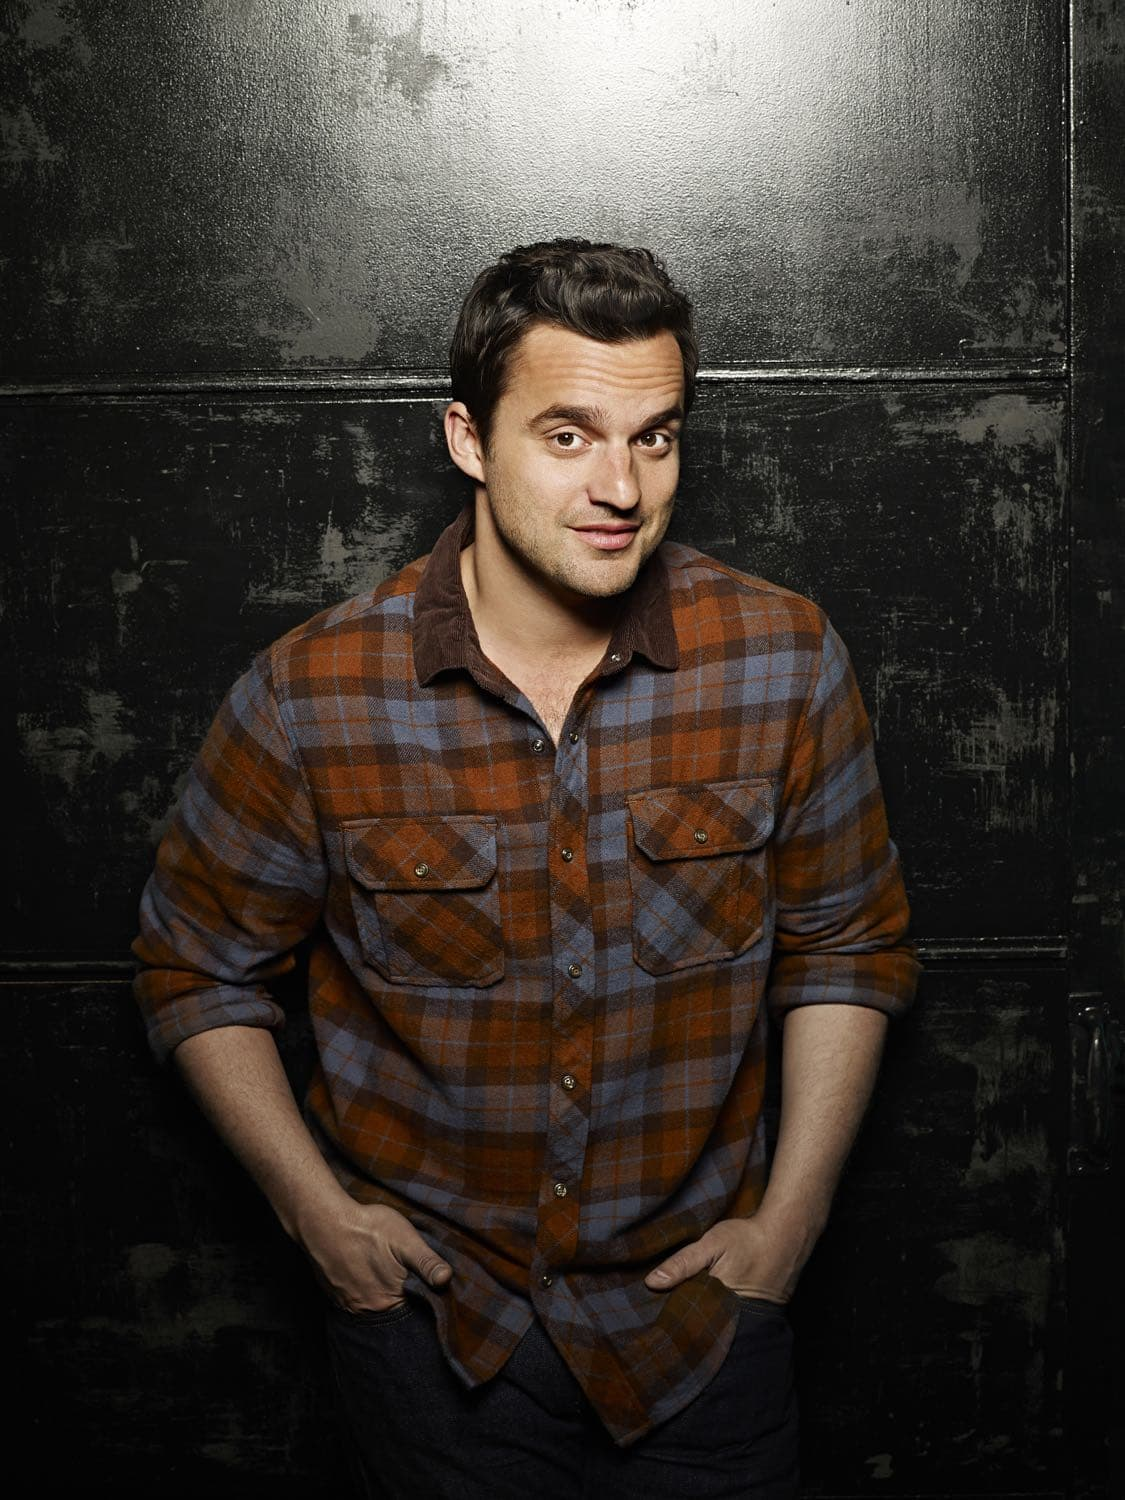 NEW GIRL: Jake Johnson returns as Nick. NEW GIRL premieres Tuesday, Sept. 20 (8:30-9:00 PM ET/PT) on FOX.